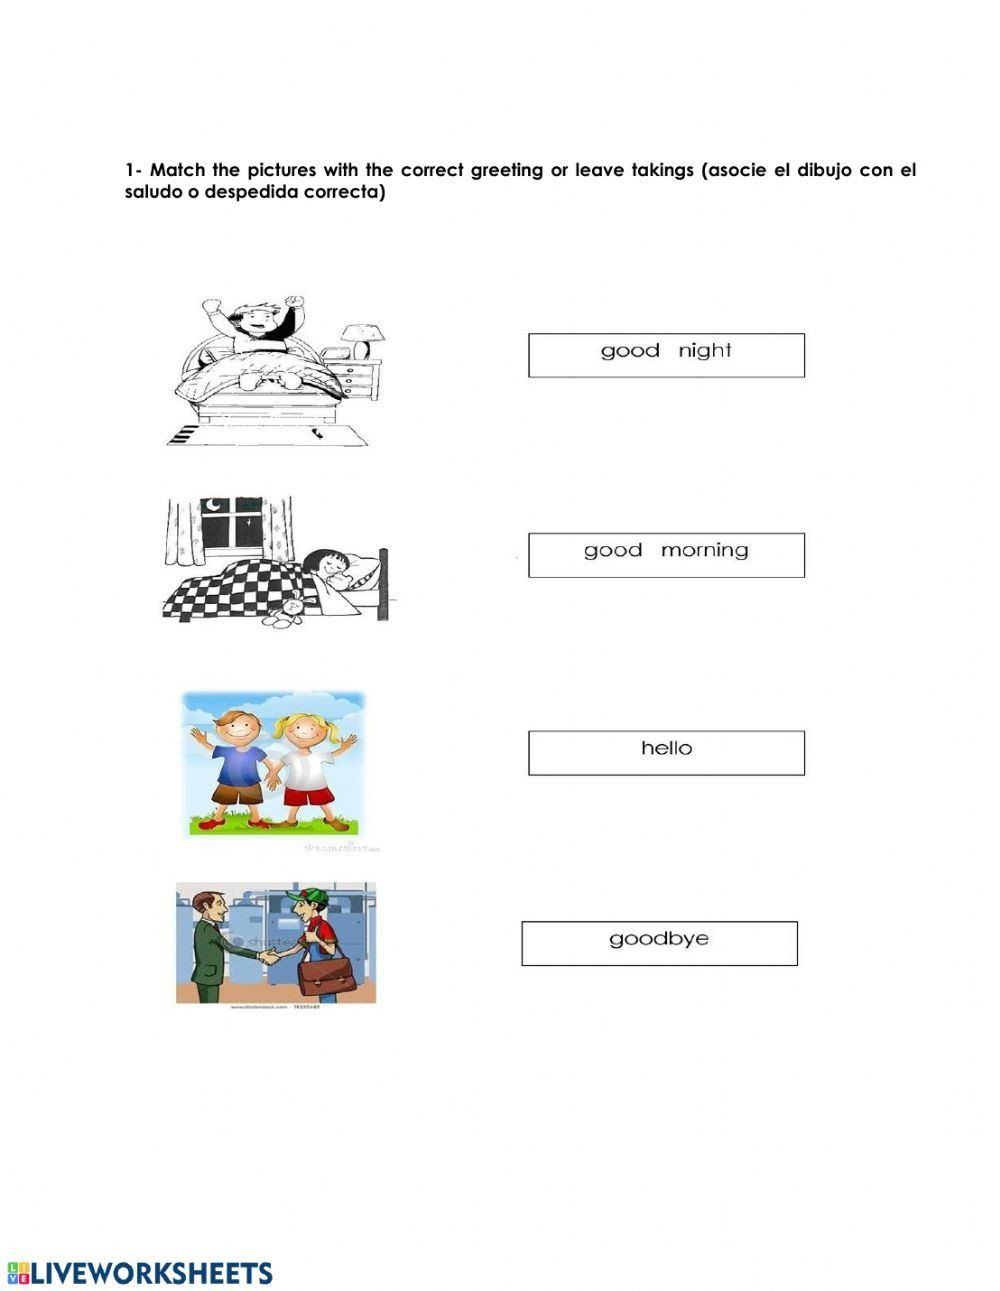 Greetings In Spanish Worksheet Review Gretings Interactive Worksheet Kids Worksheets Printables Worksheets Worksheets For Kids